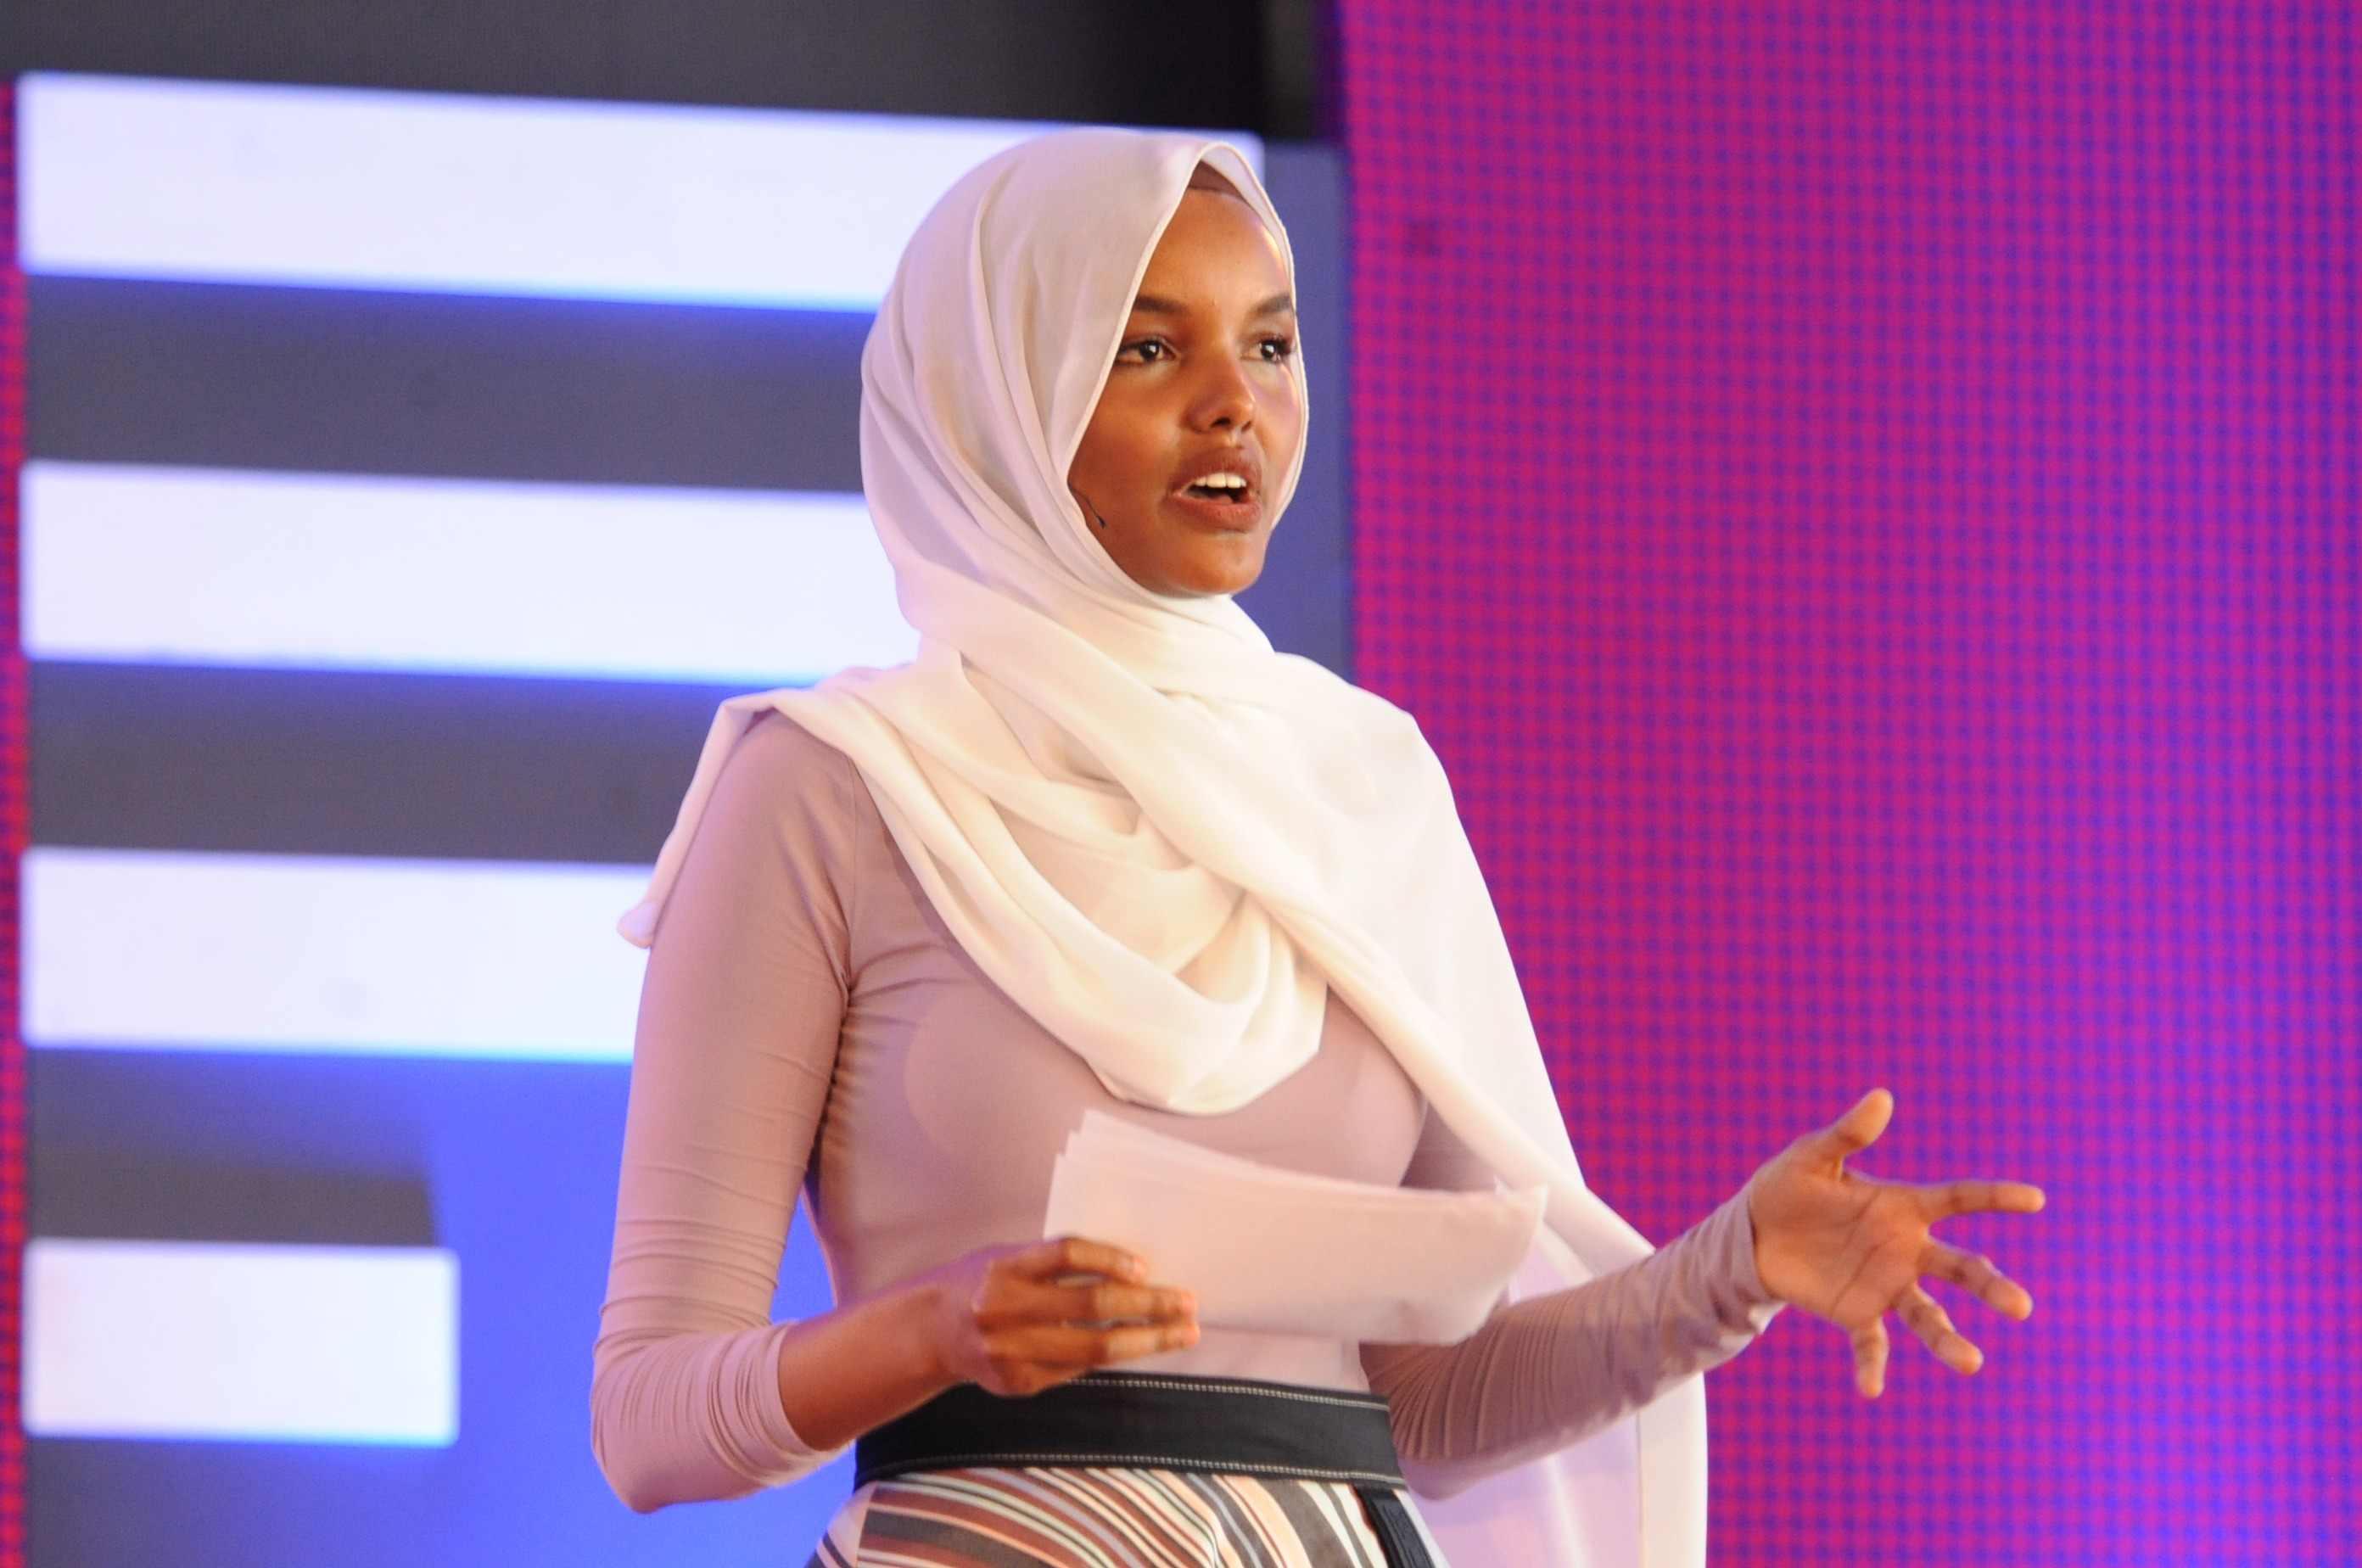 Halima Aden, a UNICEF Goodwill Ambassador, addressing the audience at the Kakuma Refugee Camp during the TEDx event.